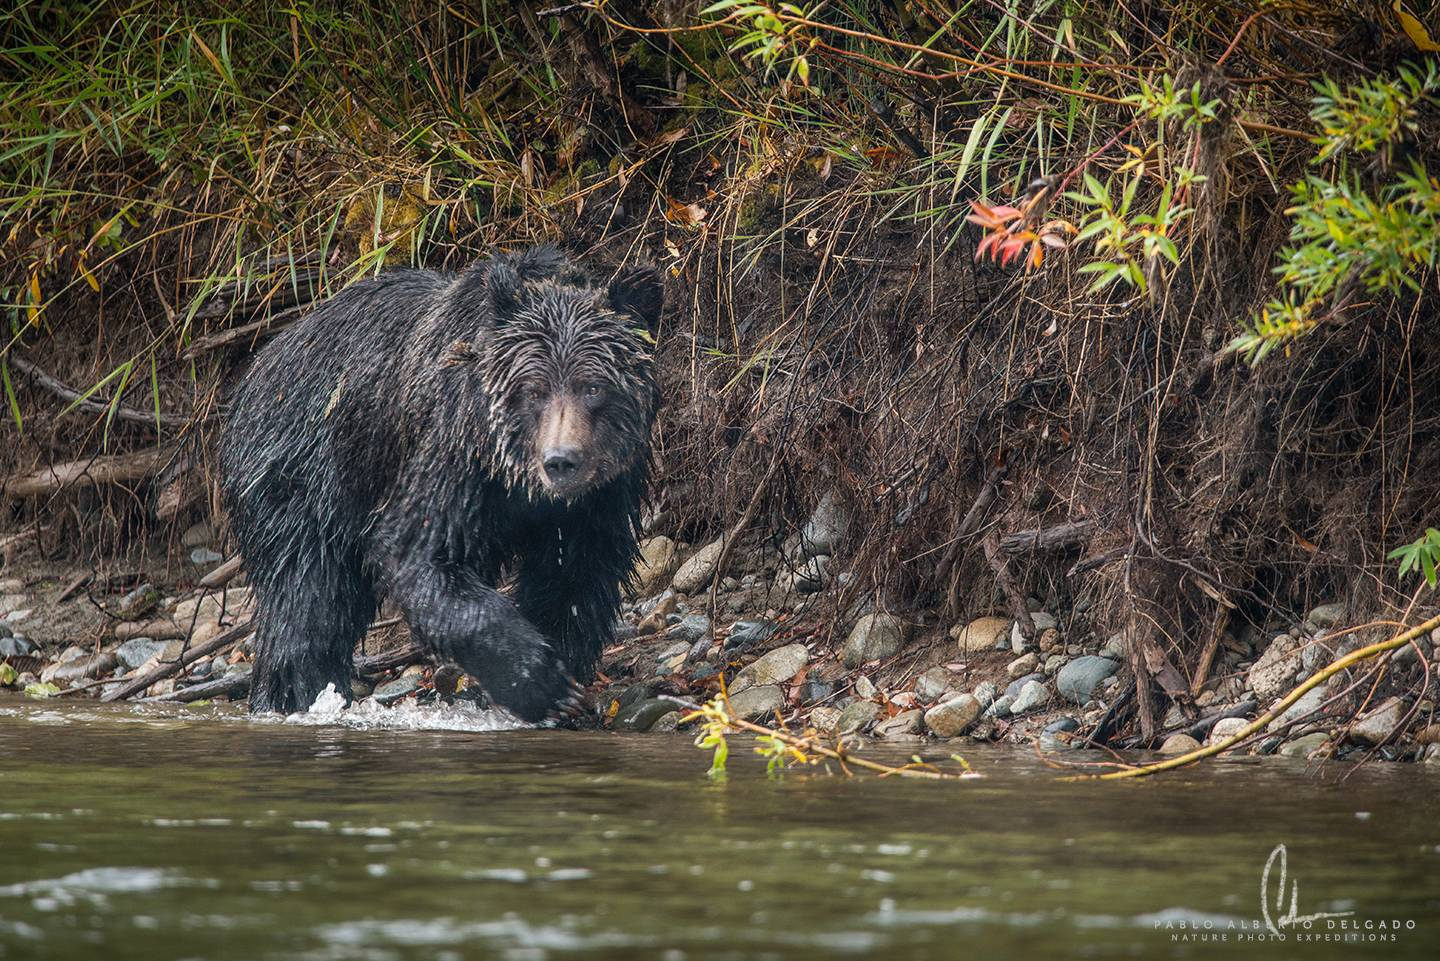 Grizzly bears photo tour